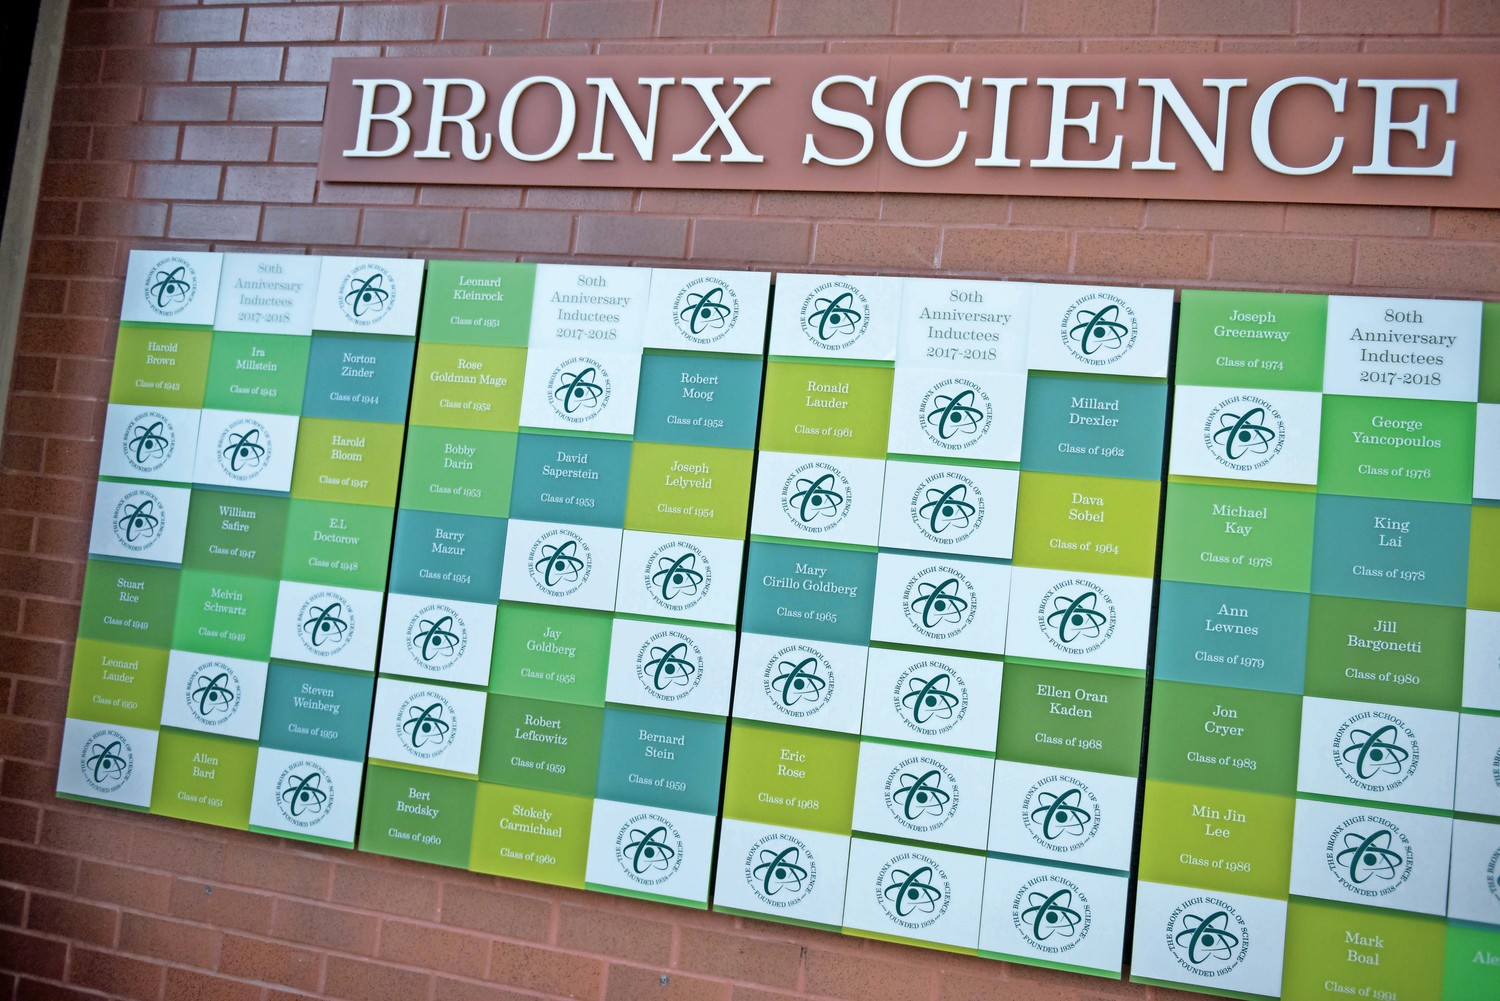 The hall of fame at Bronx Science displays the names and graduation years of notable alumni. Each alum has to come by the school to unveil his or her name.